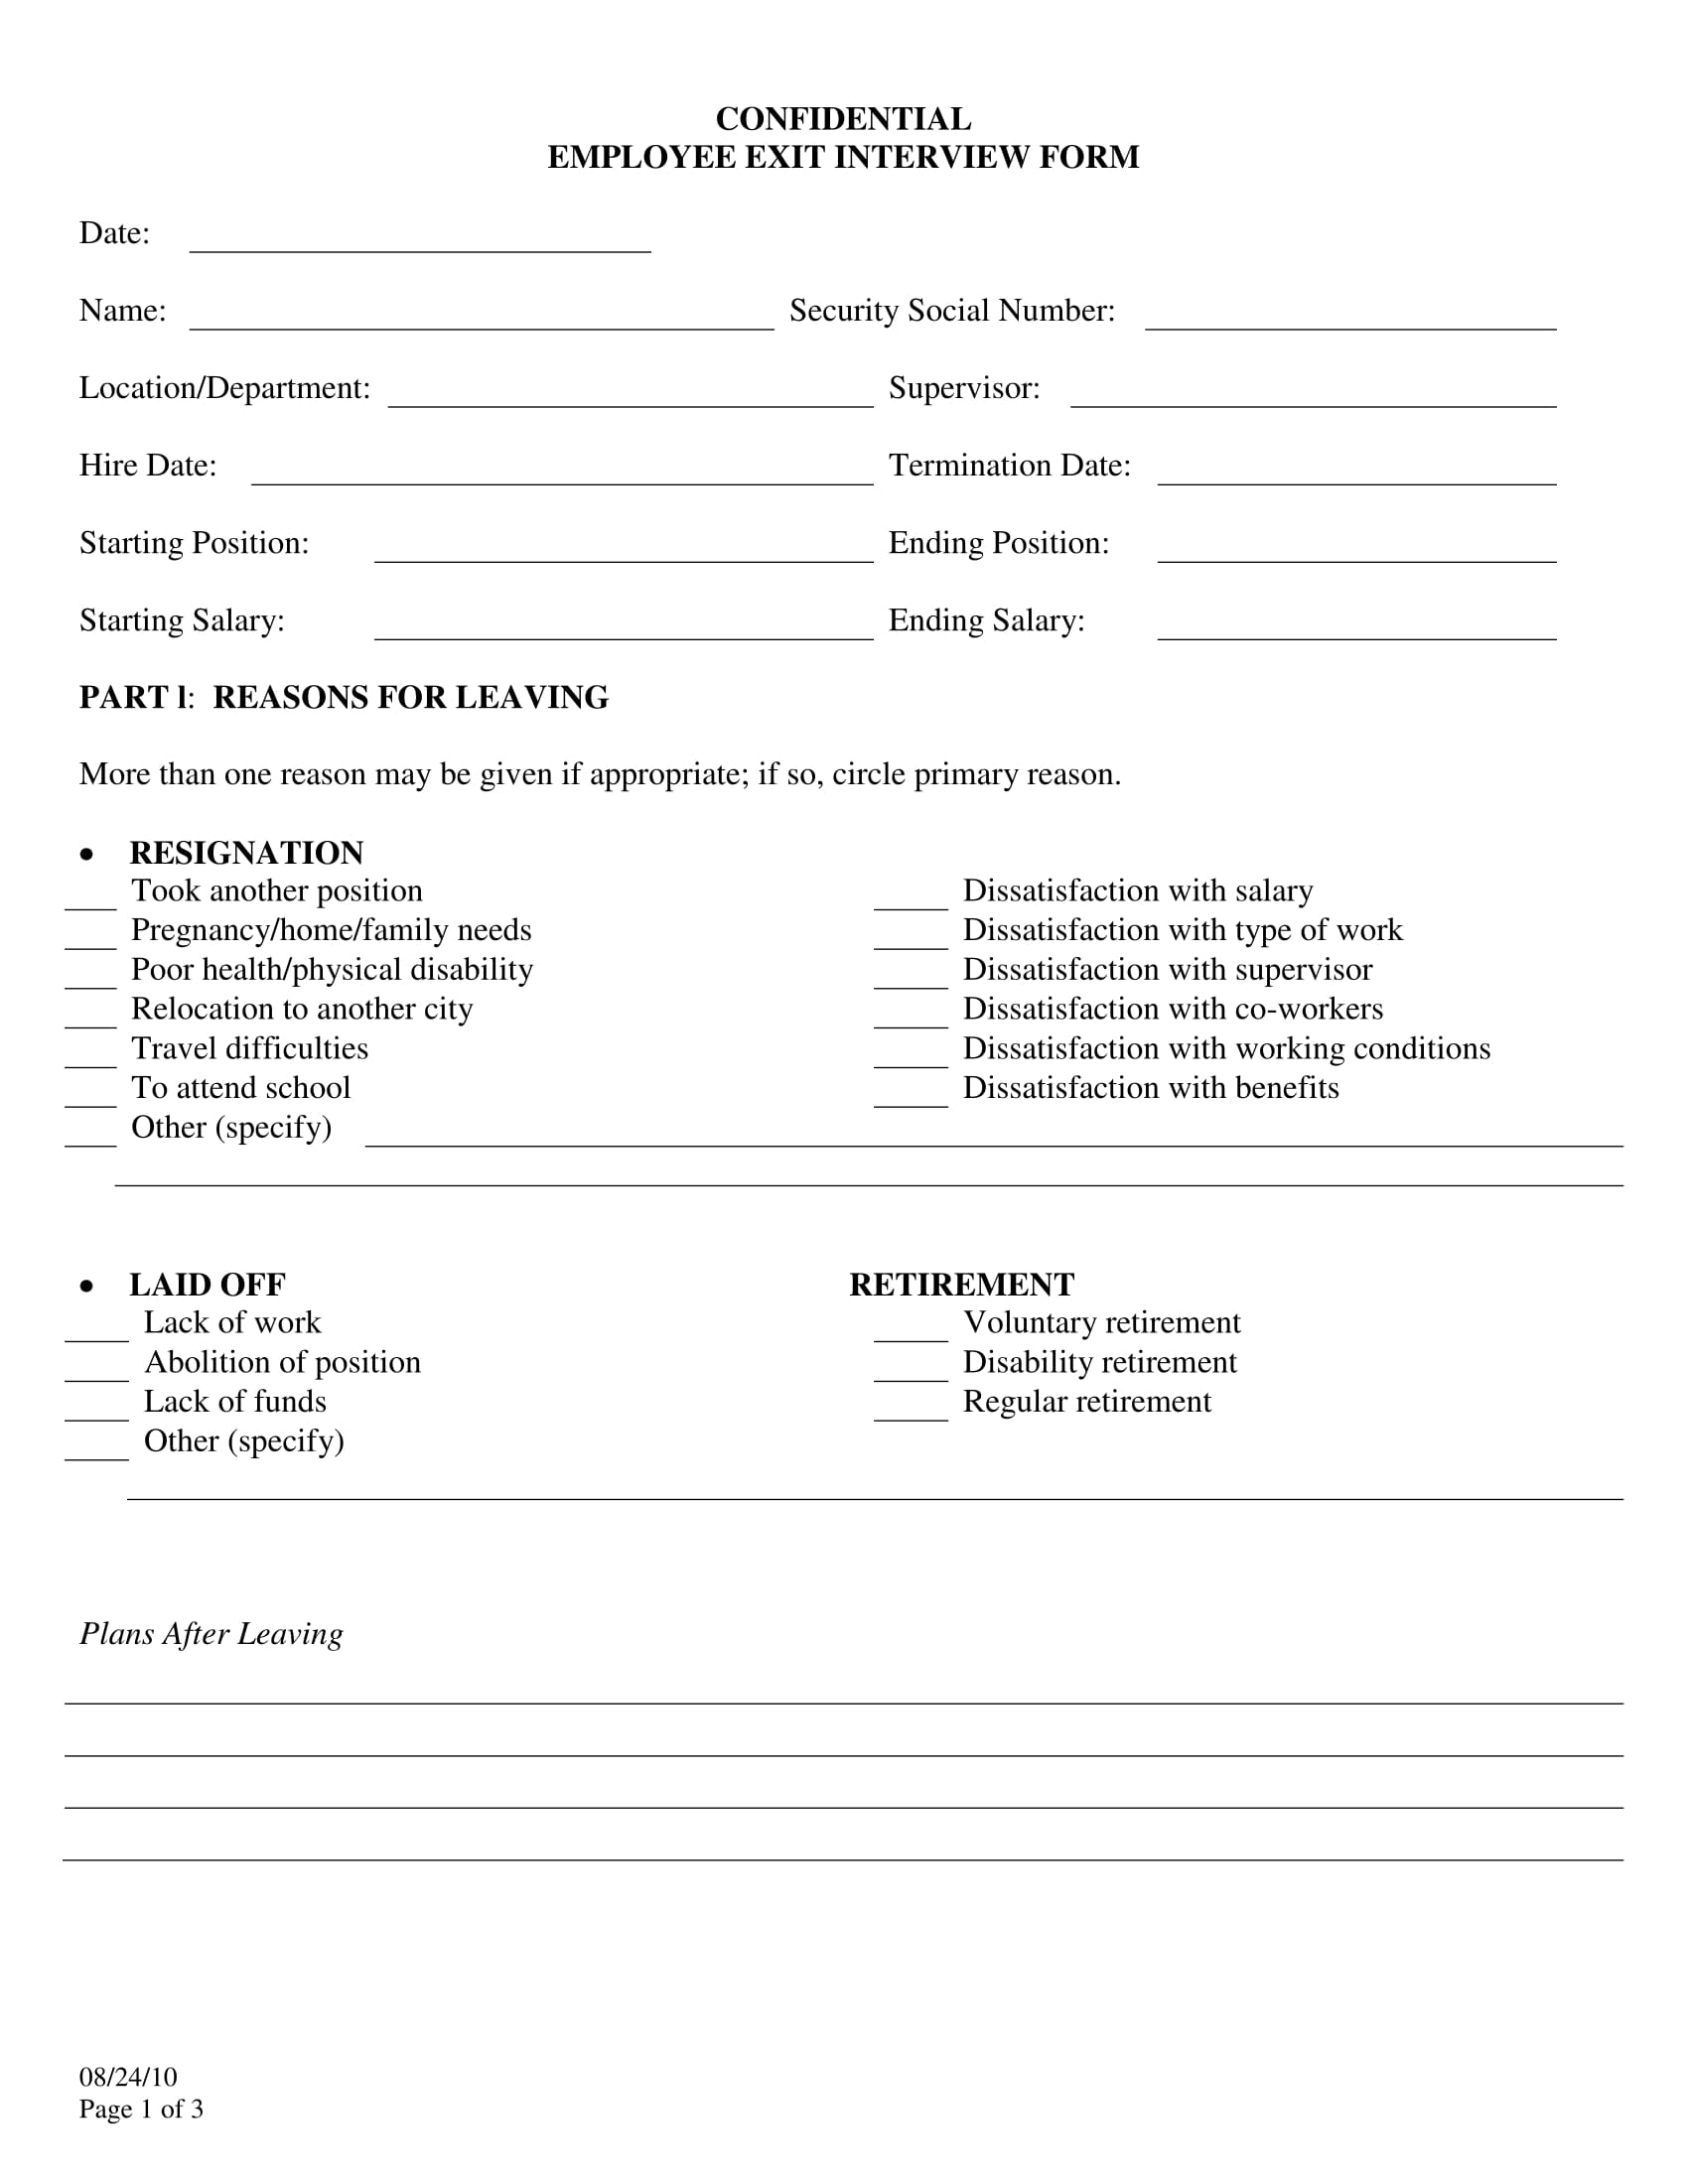 confidential employee exit interview form 1